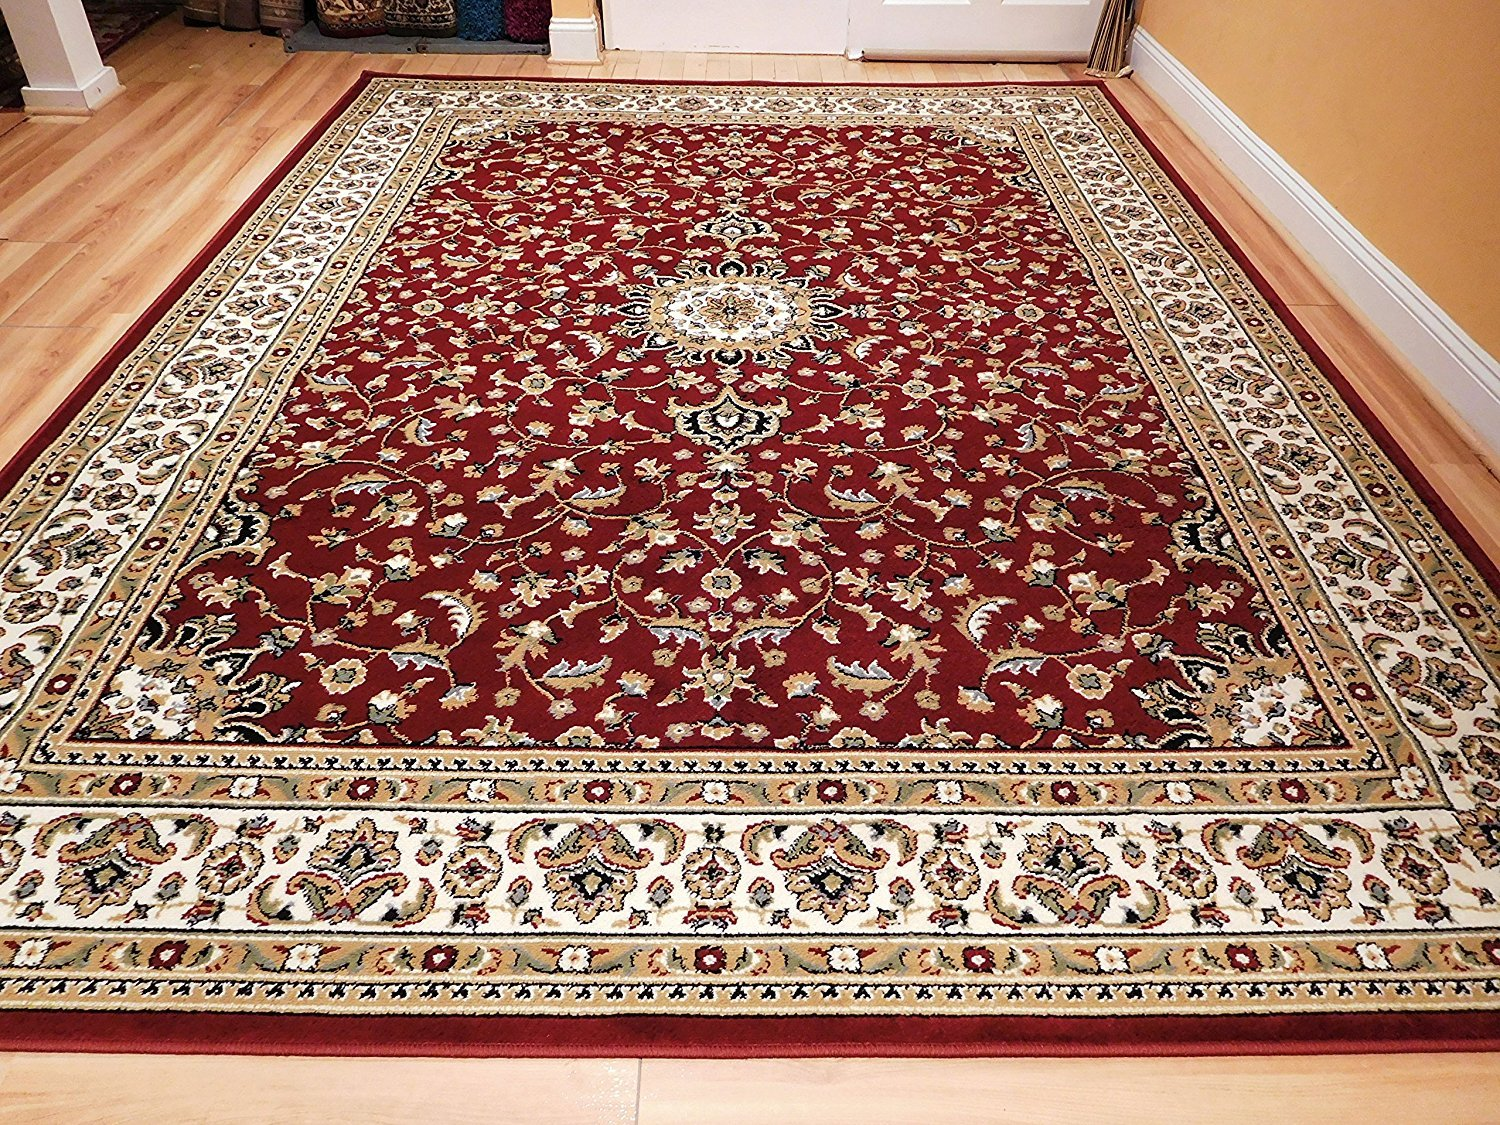 Amazon.com: Large 5x8 Red Cream Beige Black Isfahan Area Rug ...